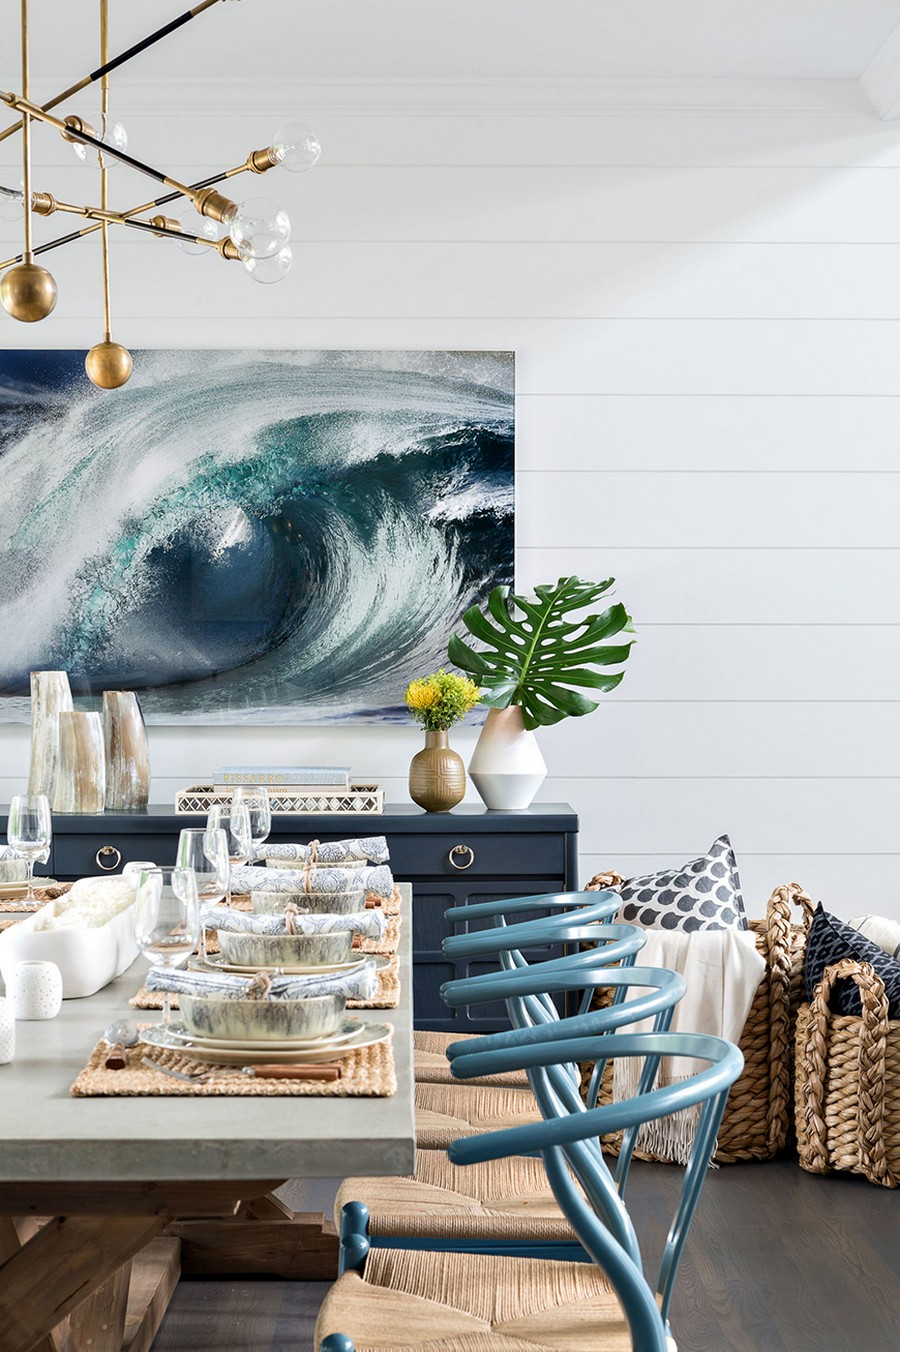 These Blue Dining Room Designs Are Super Hot On Pinterest! Blue Dining Room Designs These Blue Dining Room Designs Are Super Hot On Pinterest! These Blue Dining Room Designs Are Super Hot On Pinterest 3